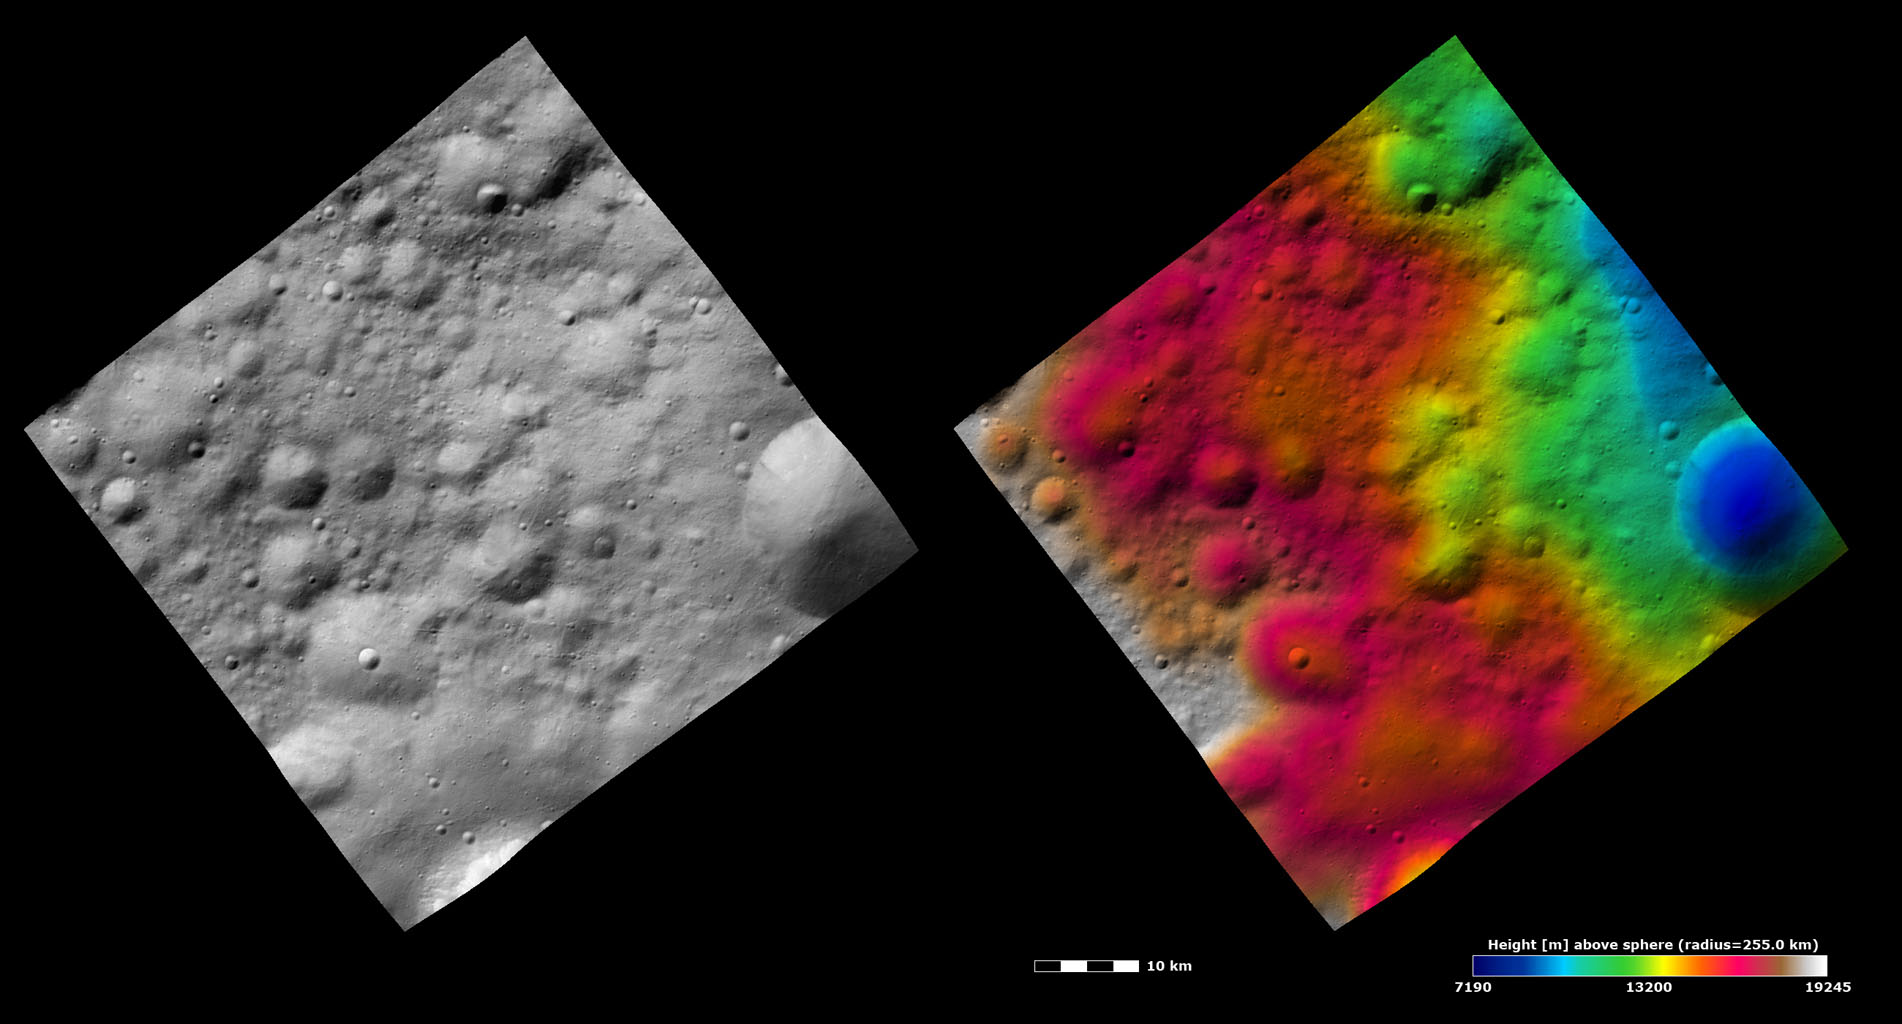 Topography and Albedo Image of Different Preservations States of Craters